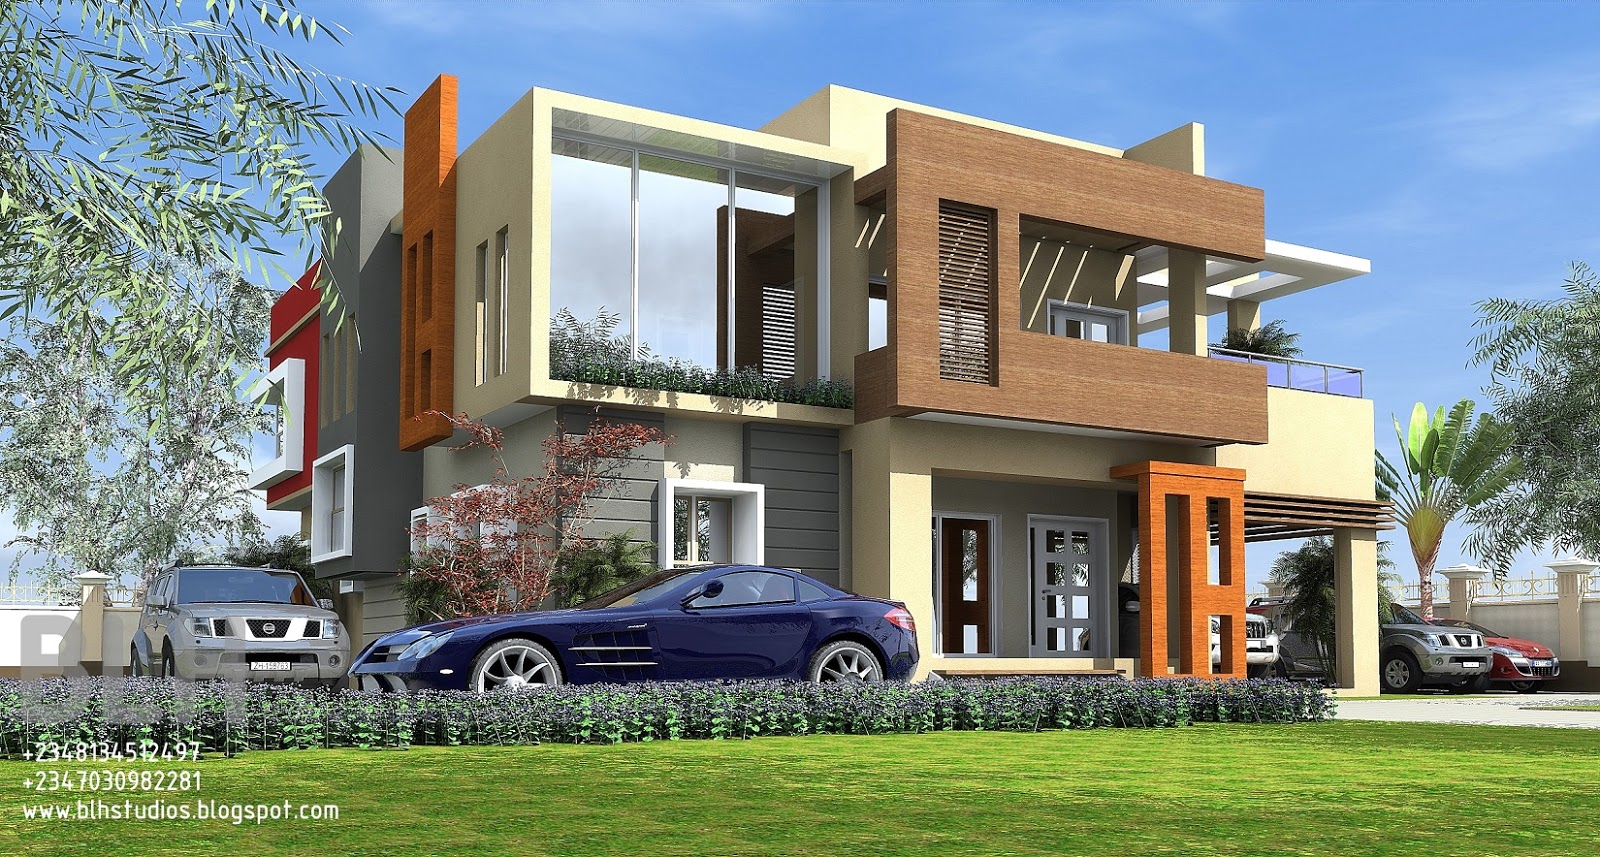 Architectural designs by blacklakehouse november 2015 for Modern duplex house plans in nigeria